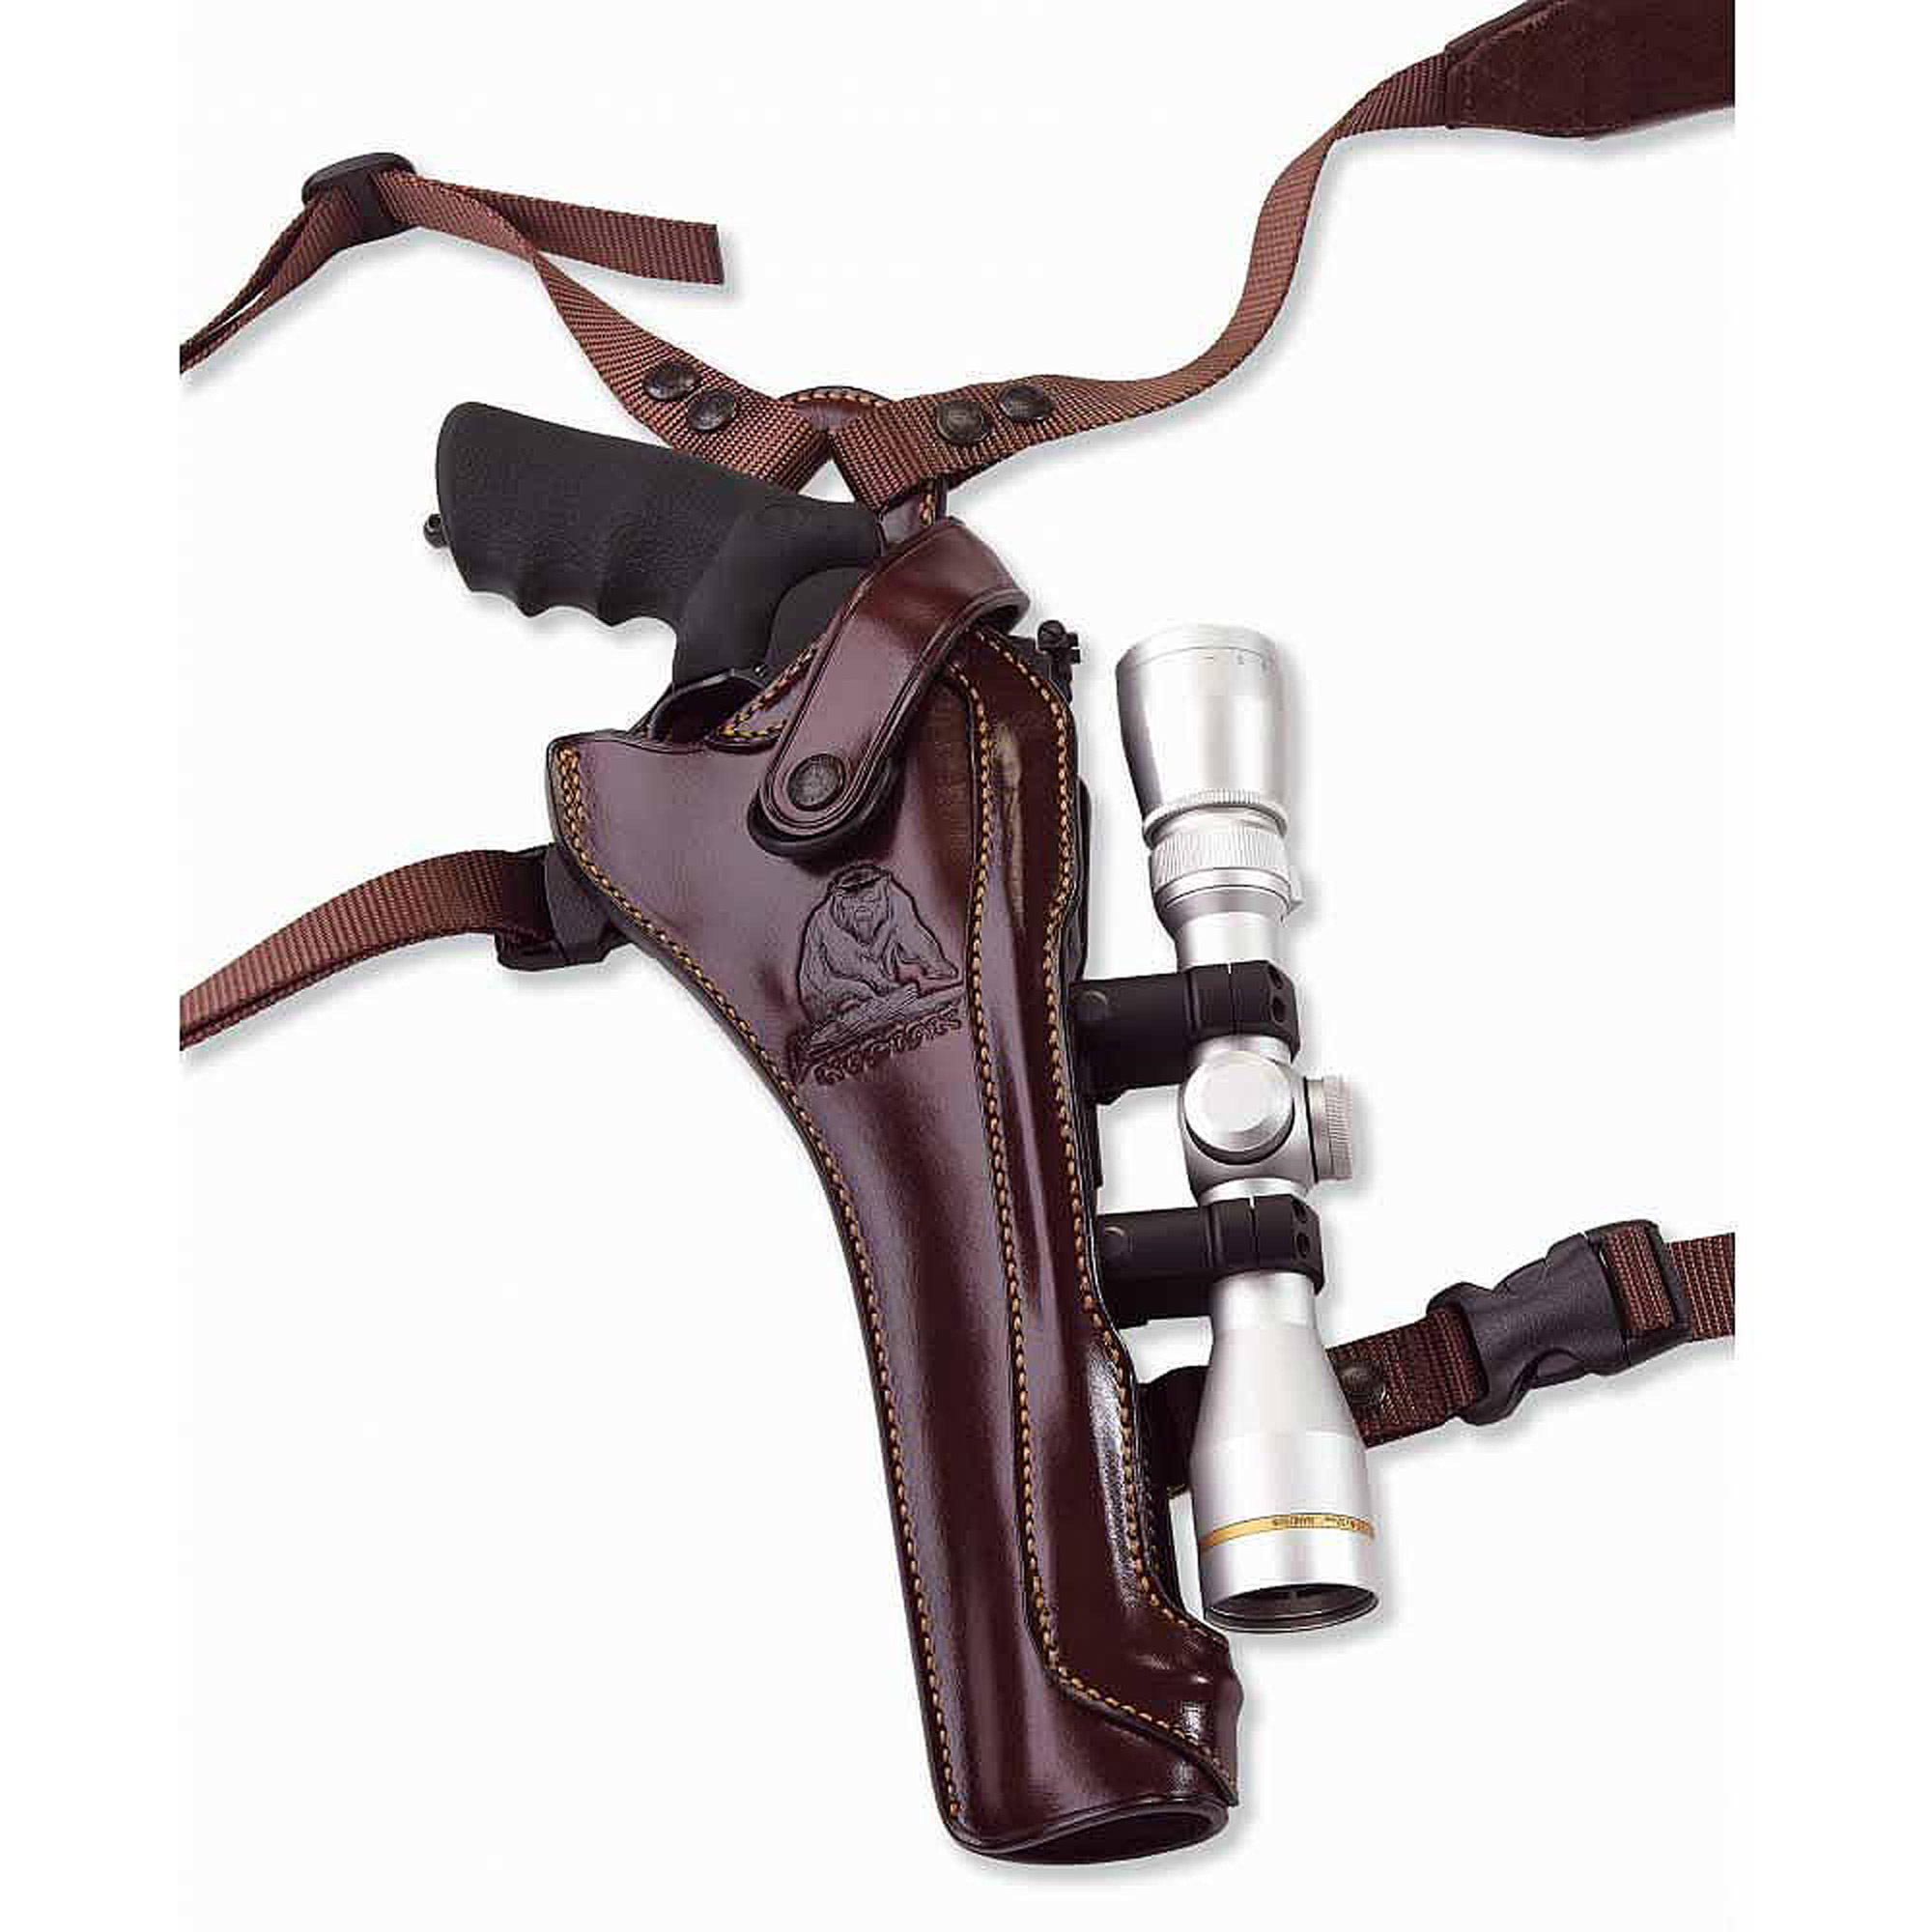 Galco Kodiak Hunter Shoulder Holster (Dark Havana Brown), 8 3 8-Inch S&W N FR .44 Model 29 629, Right Hand KH130H Ga by Galco